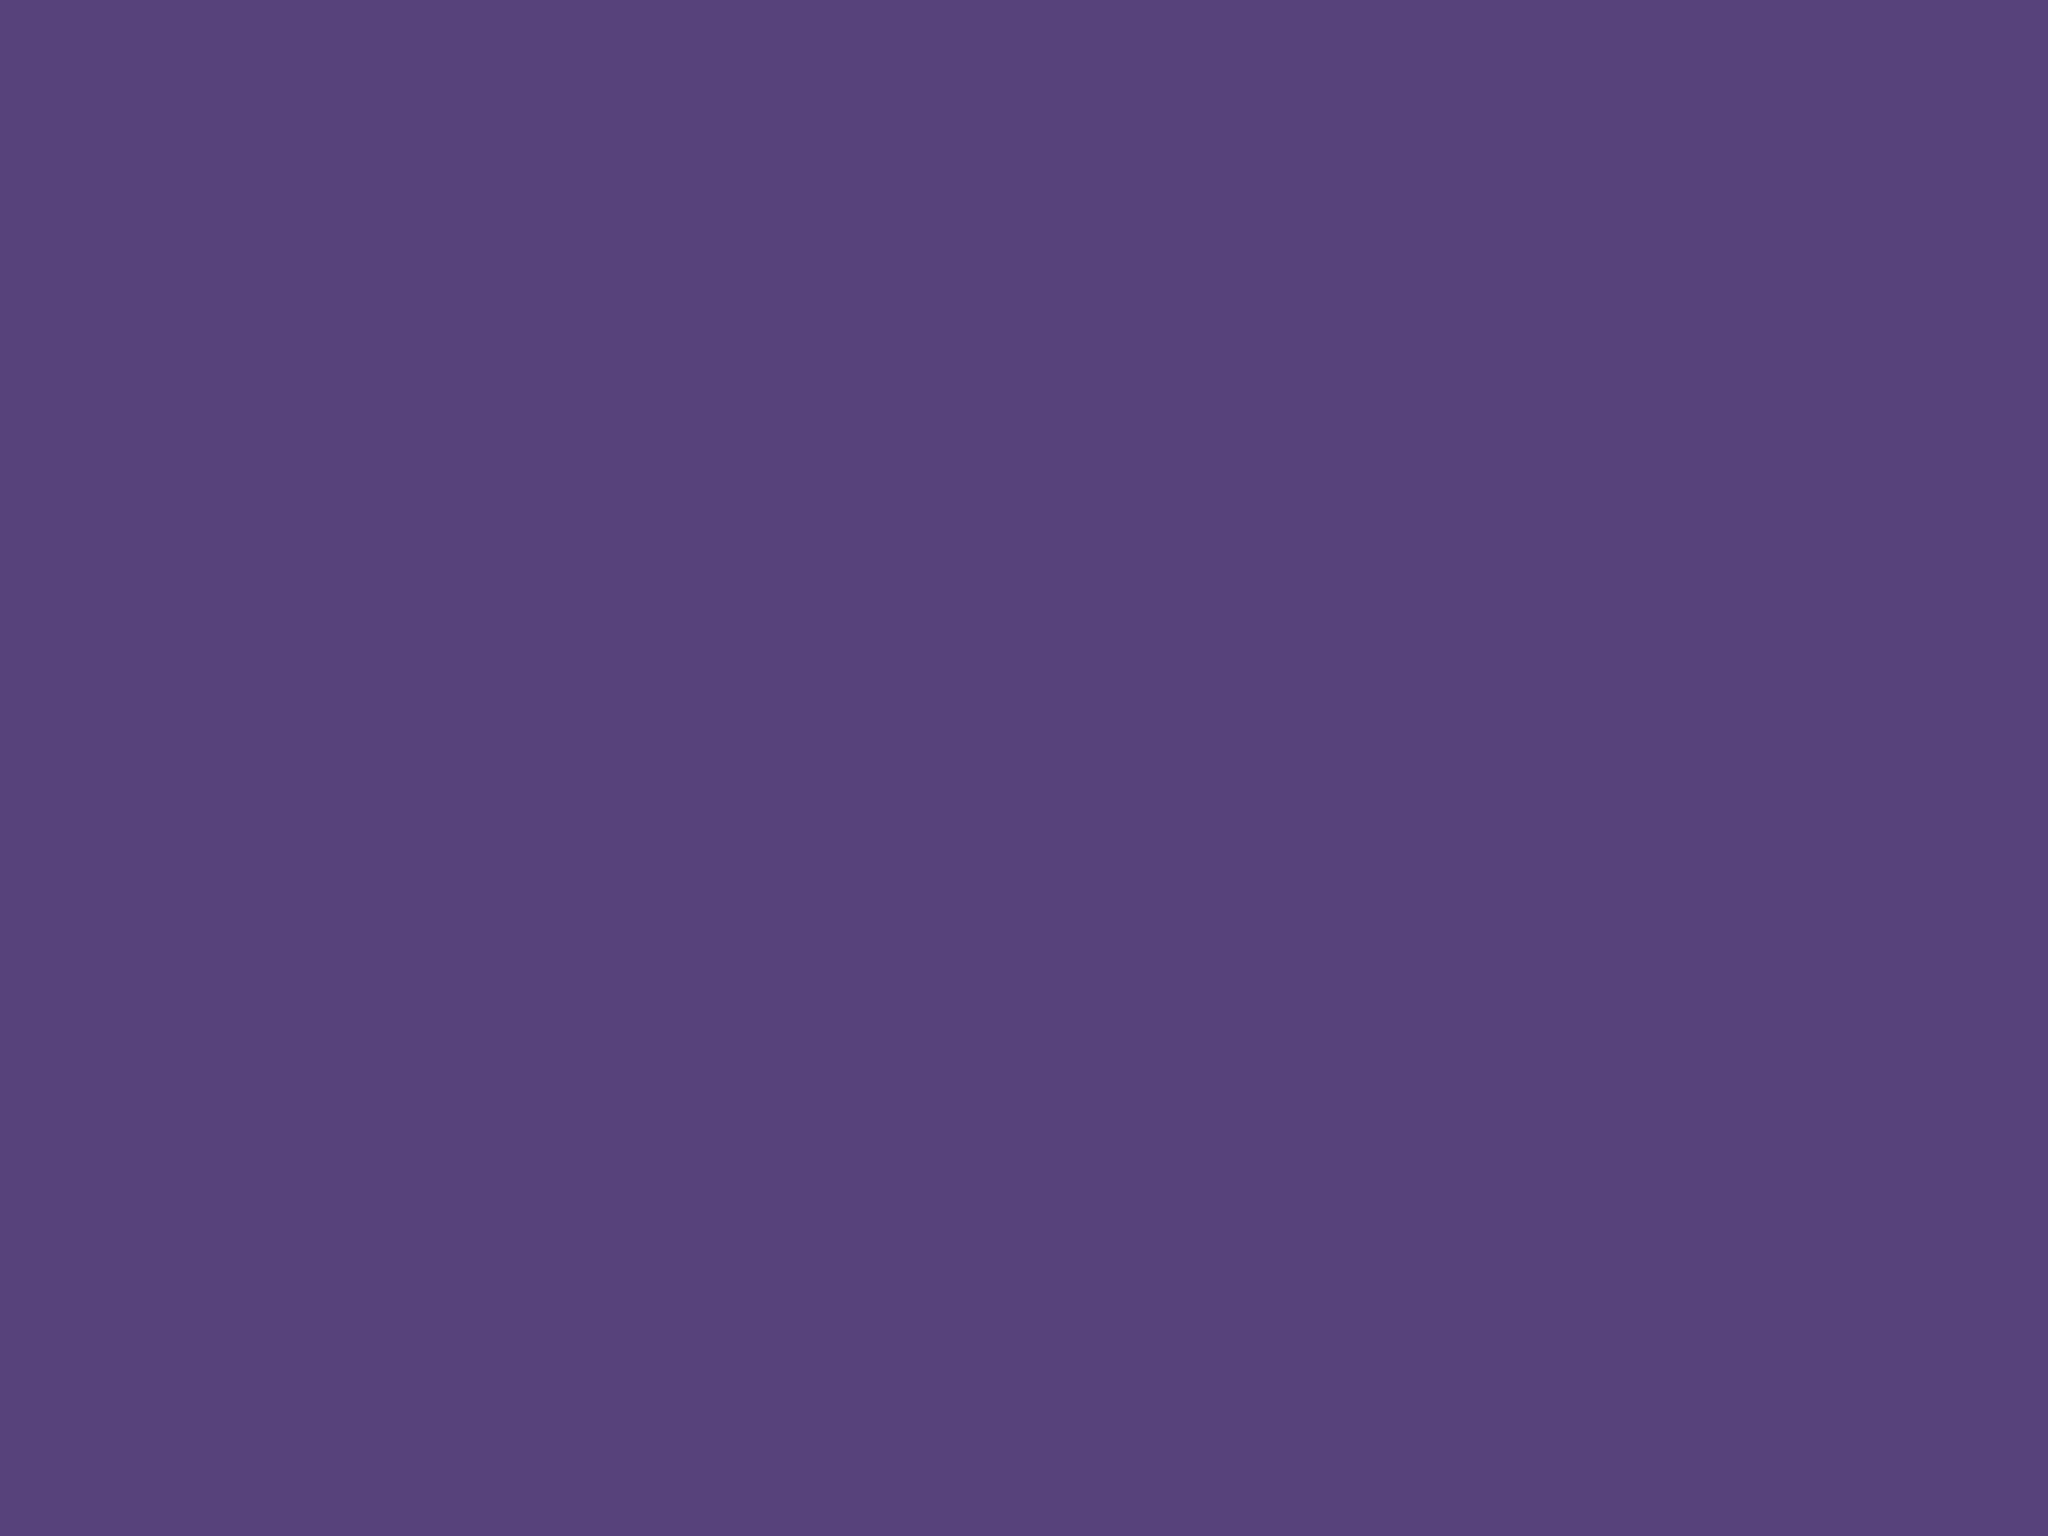 2048x1536 Cyber Grape Solid Color Background